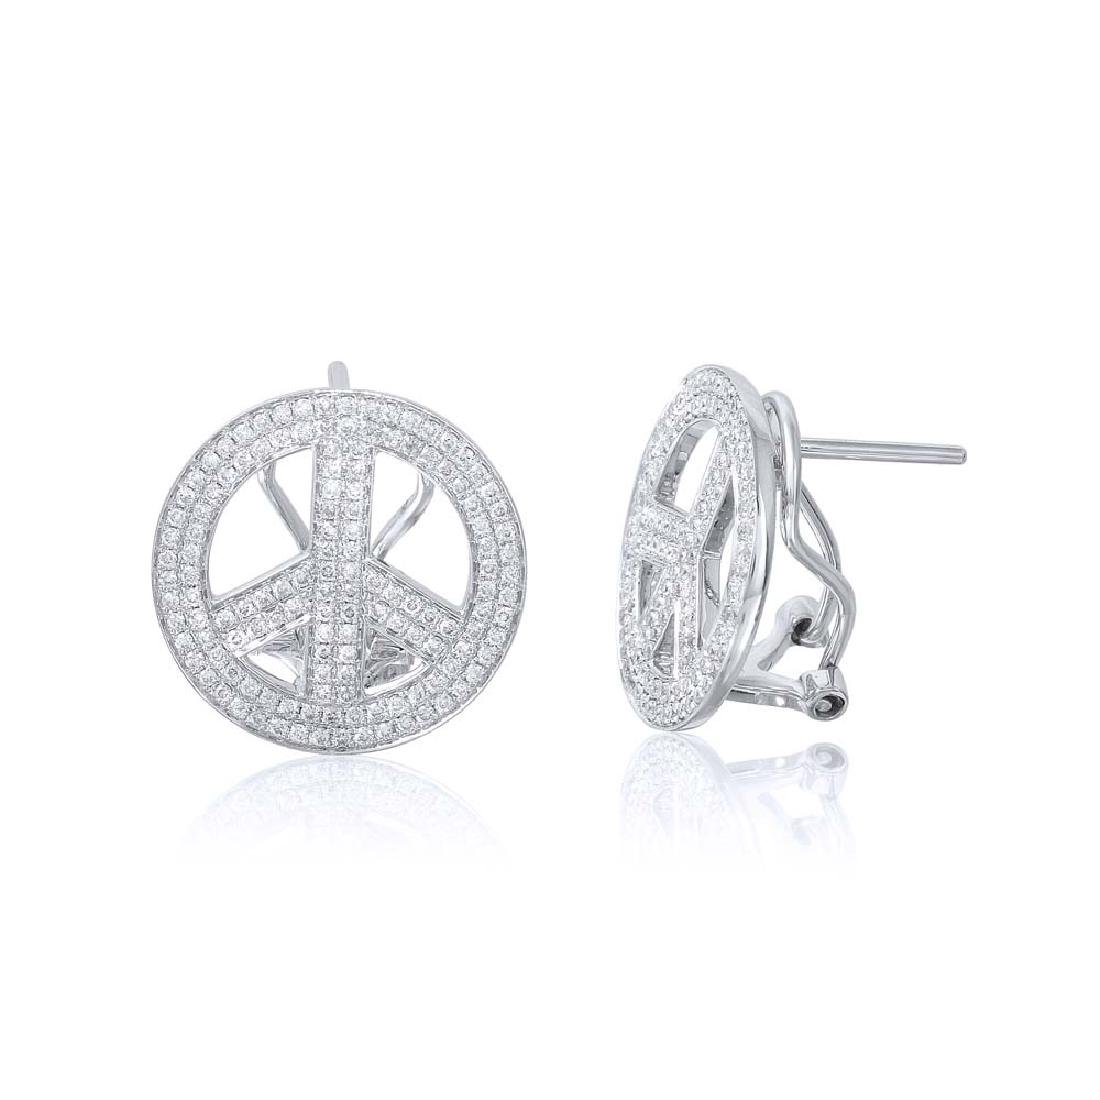 0.84 CTW Diamond Button  Earring in 14K White Gold